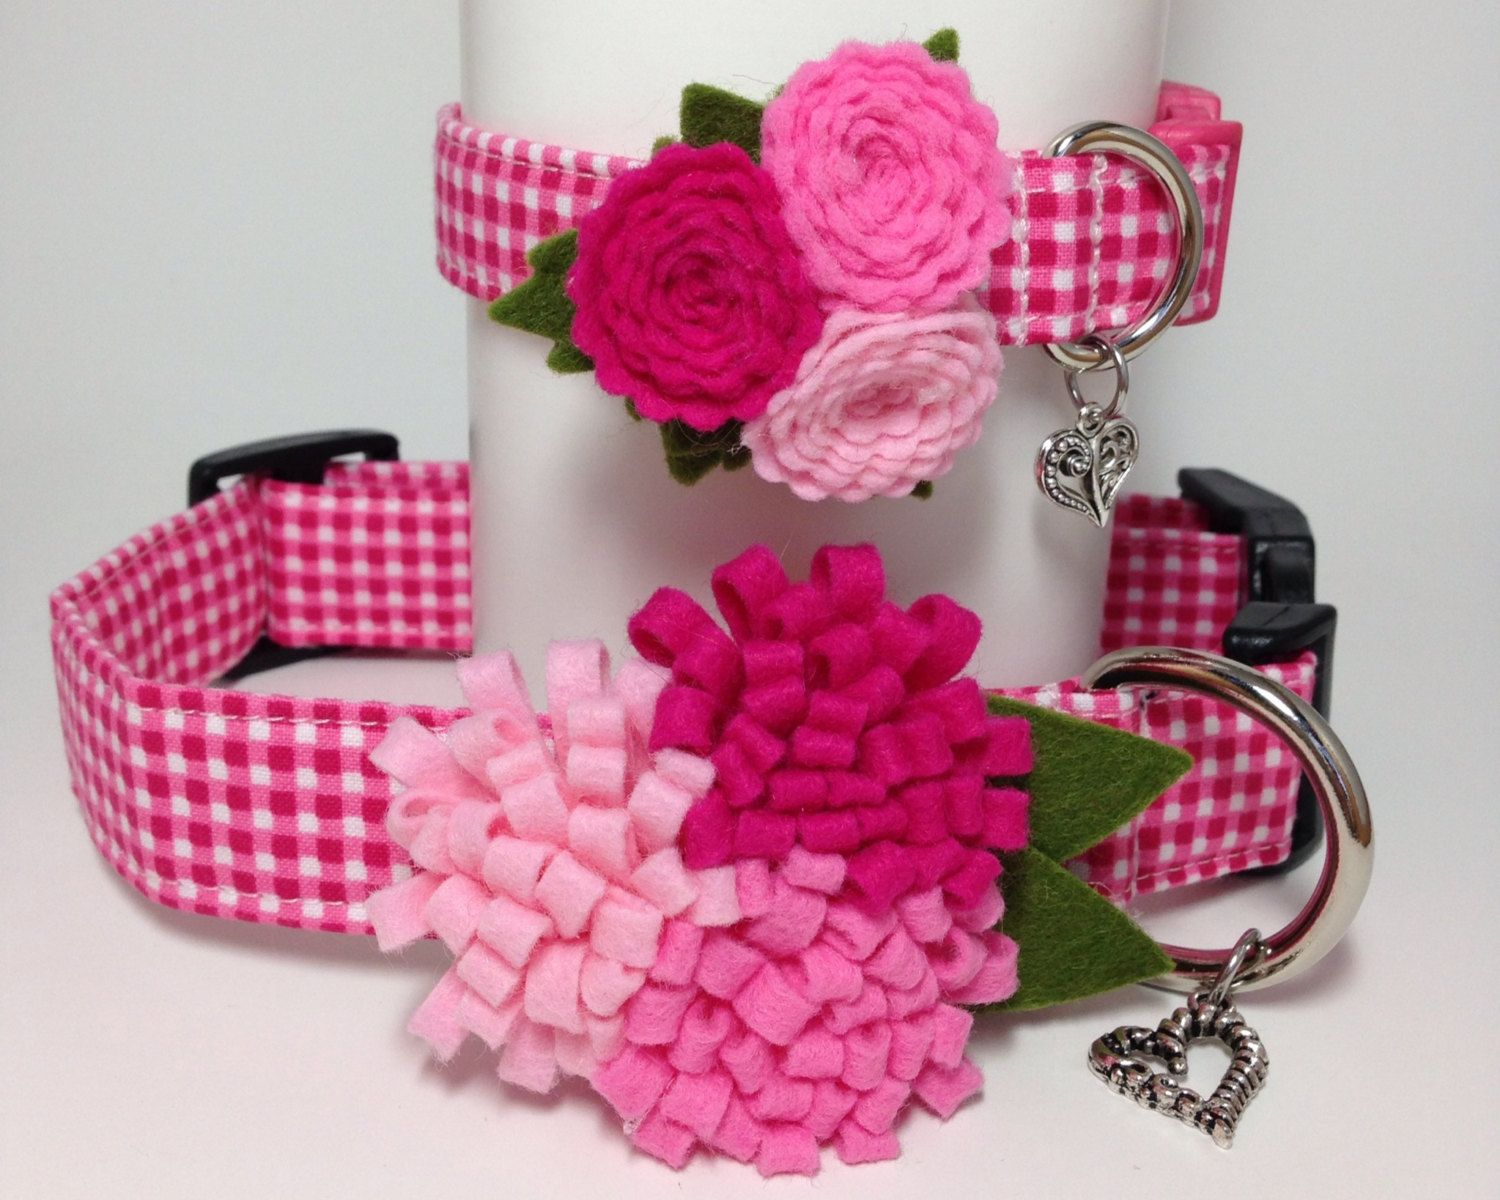 Vip gingham check pink flower dog collar dog collars dog and vip gingham check pink flower dog collar dhlflorist Choice Image